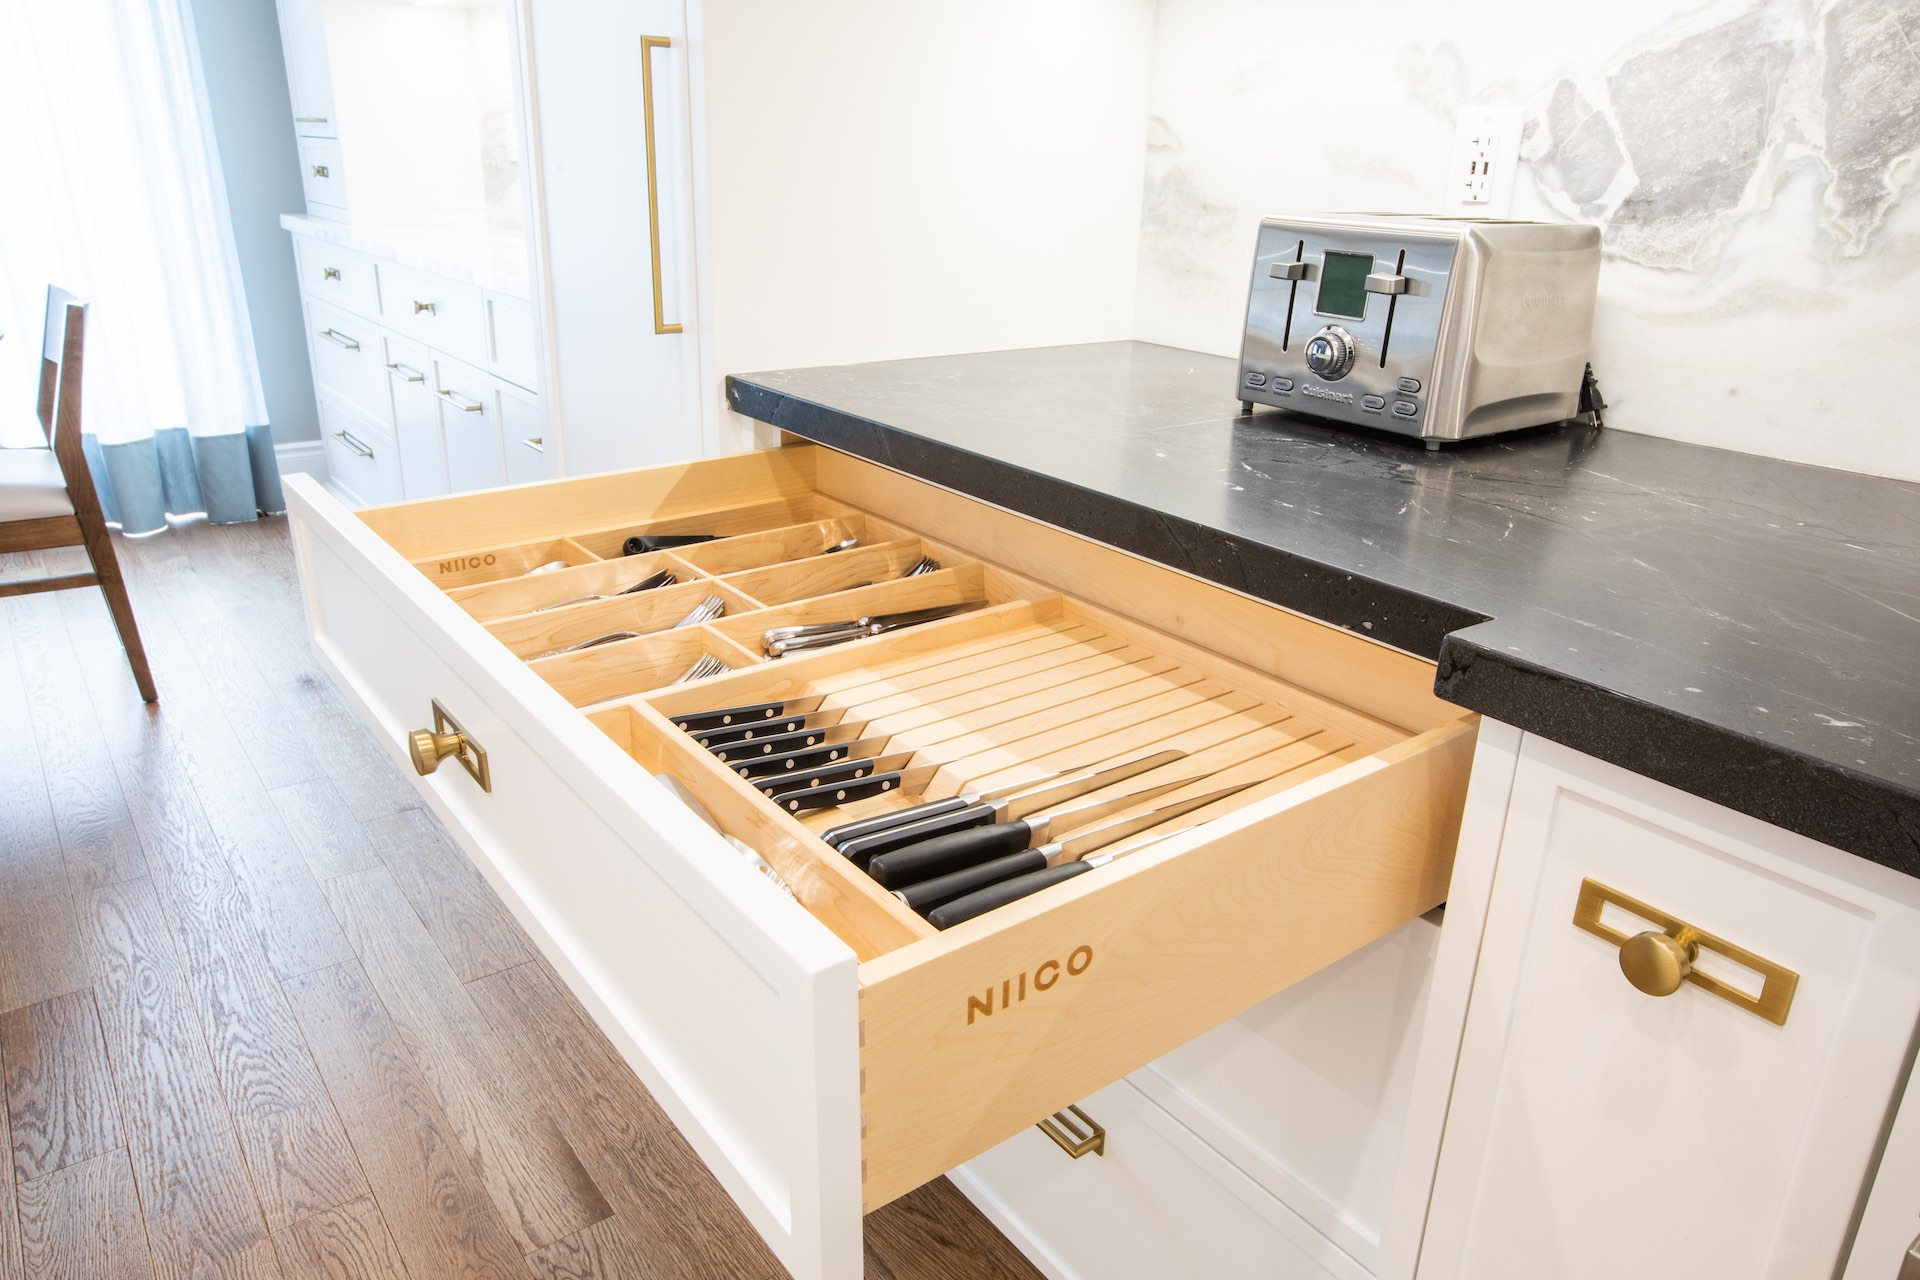 Wood kitchen drawer open with knives